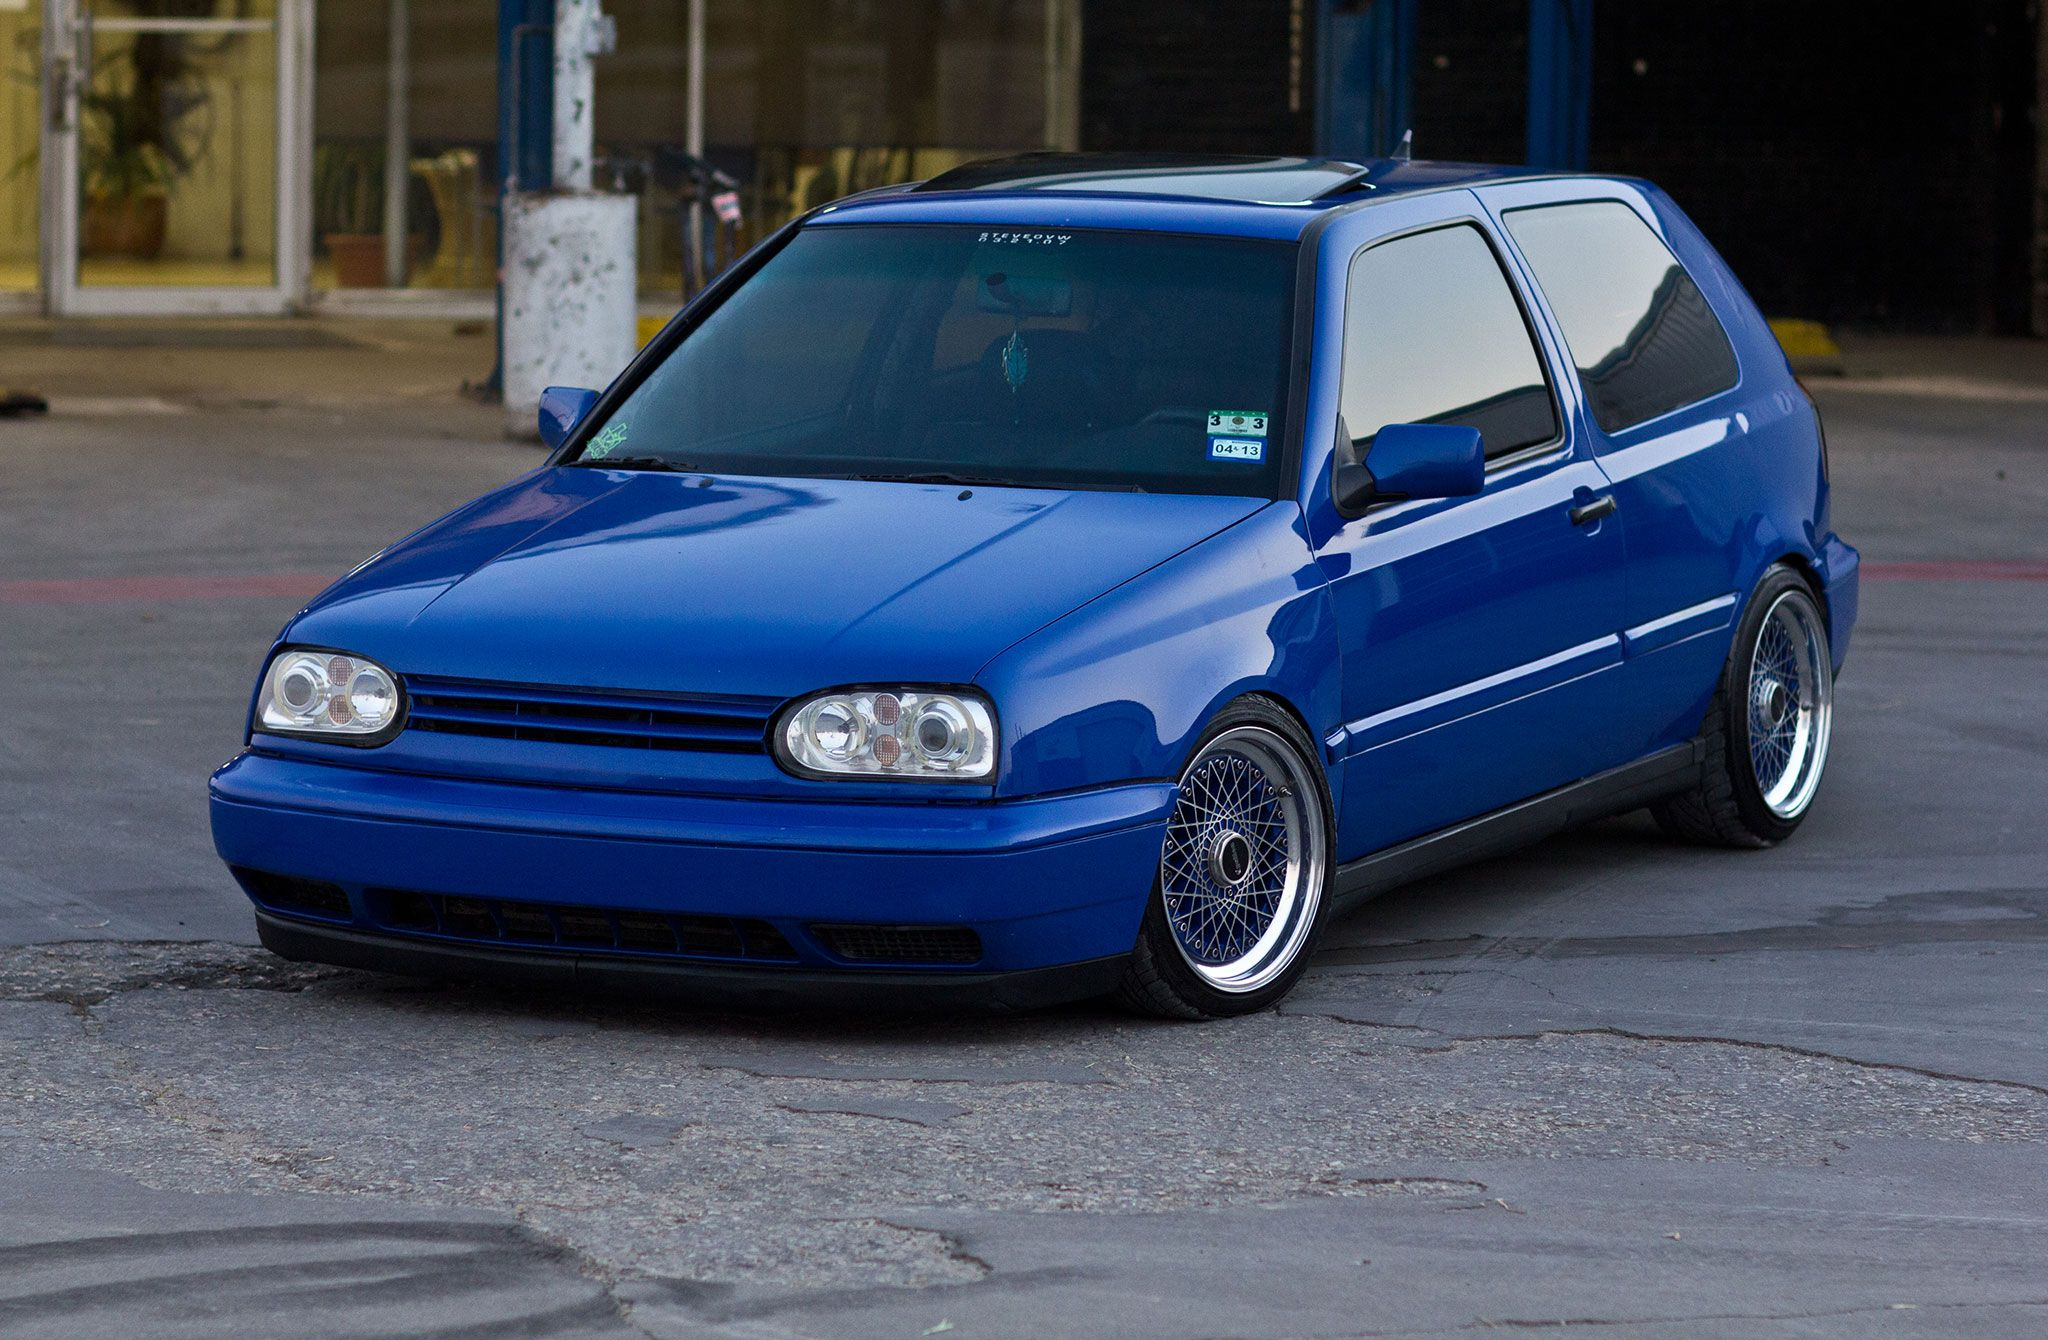 Volkswagen vr6 photo - 5